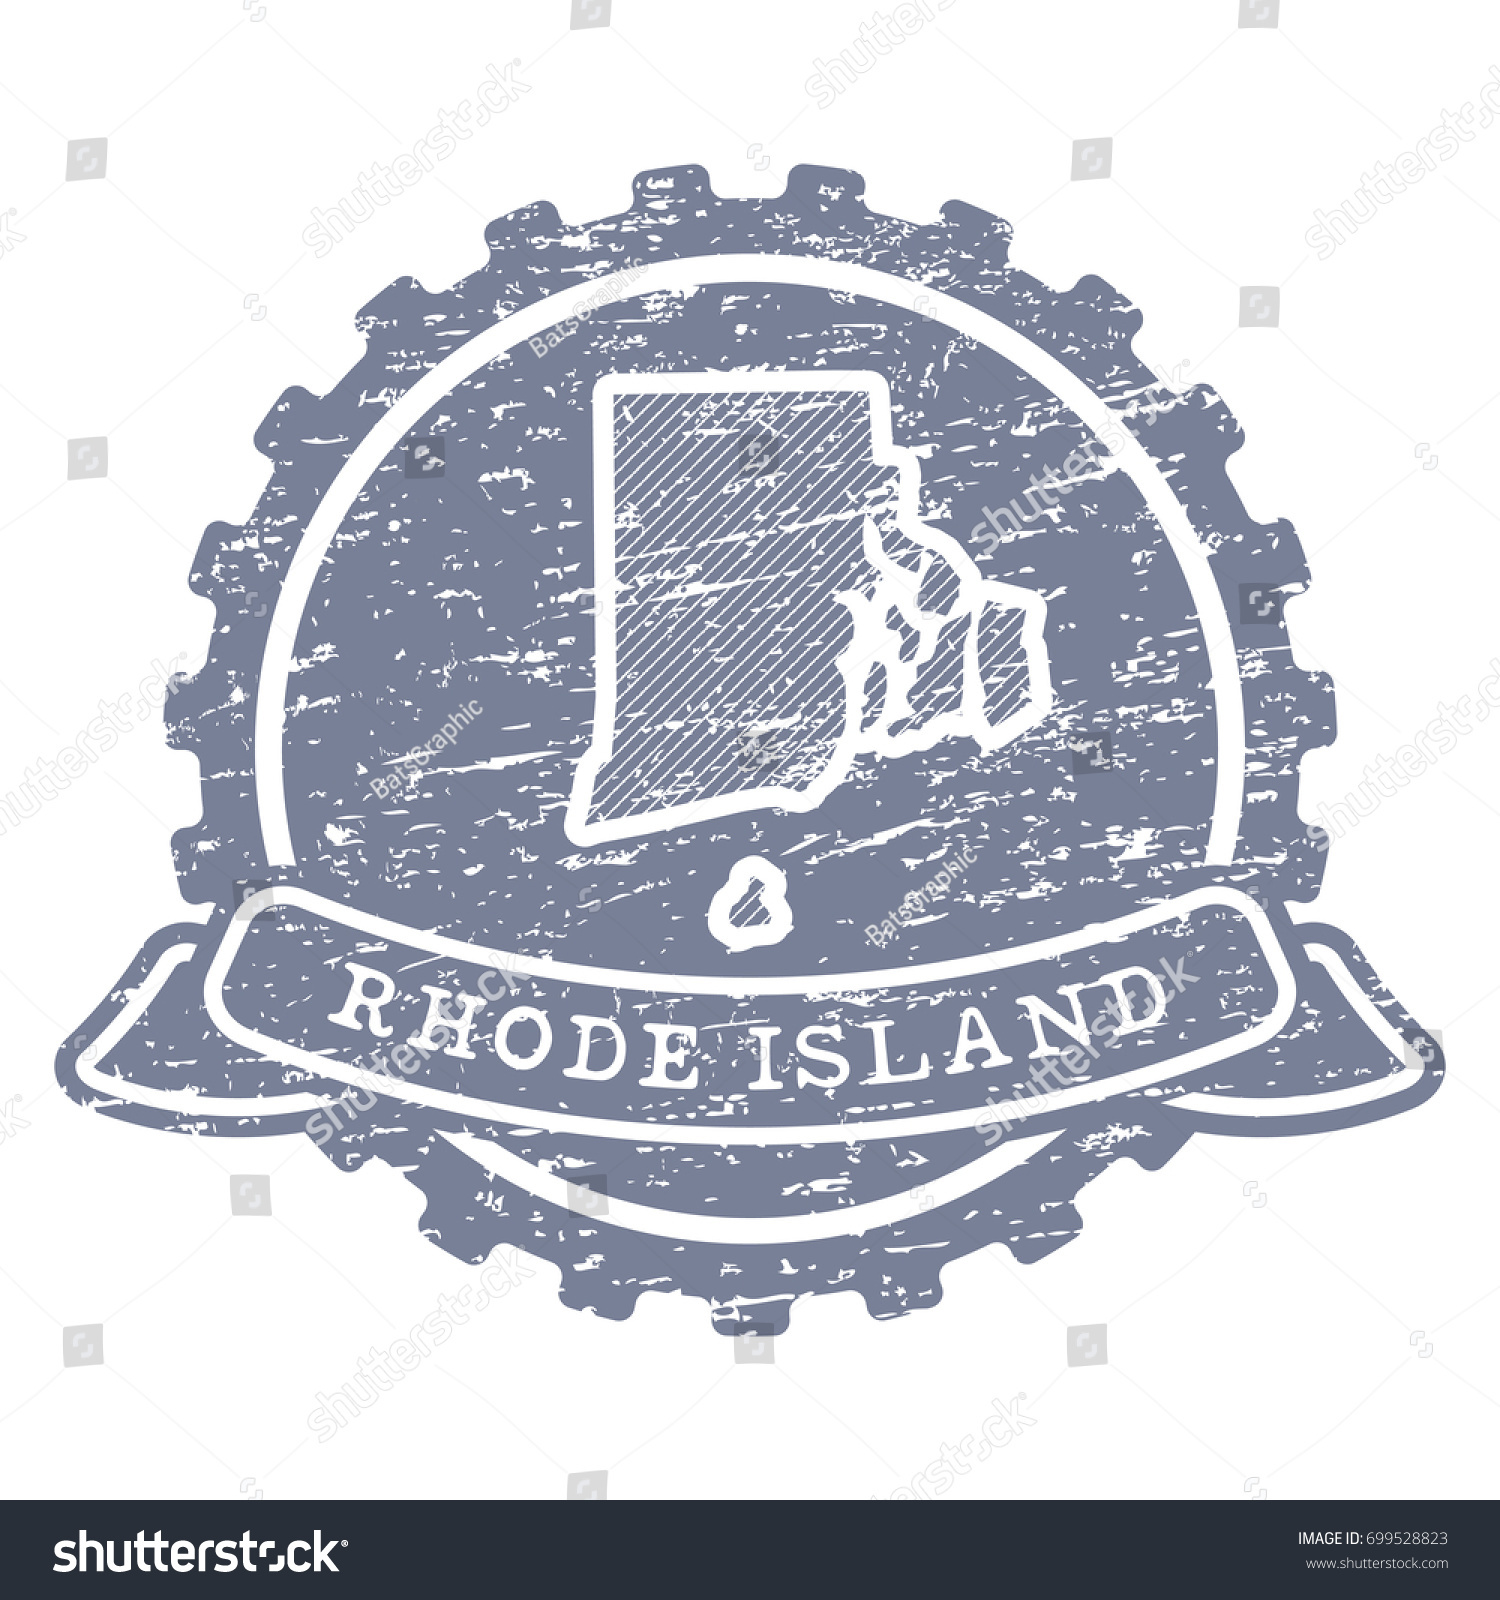 Vector icon rhode island state made stock vector 699528823 a vector icon of rhode island state made with simple isolated shapes in vintage style and biocorpaavc Choice Image